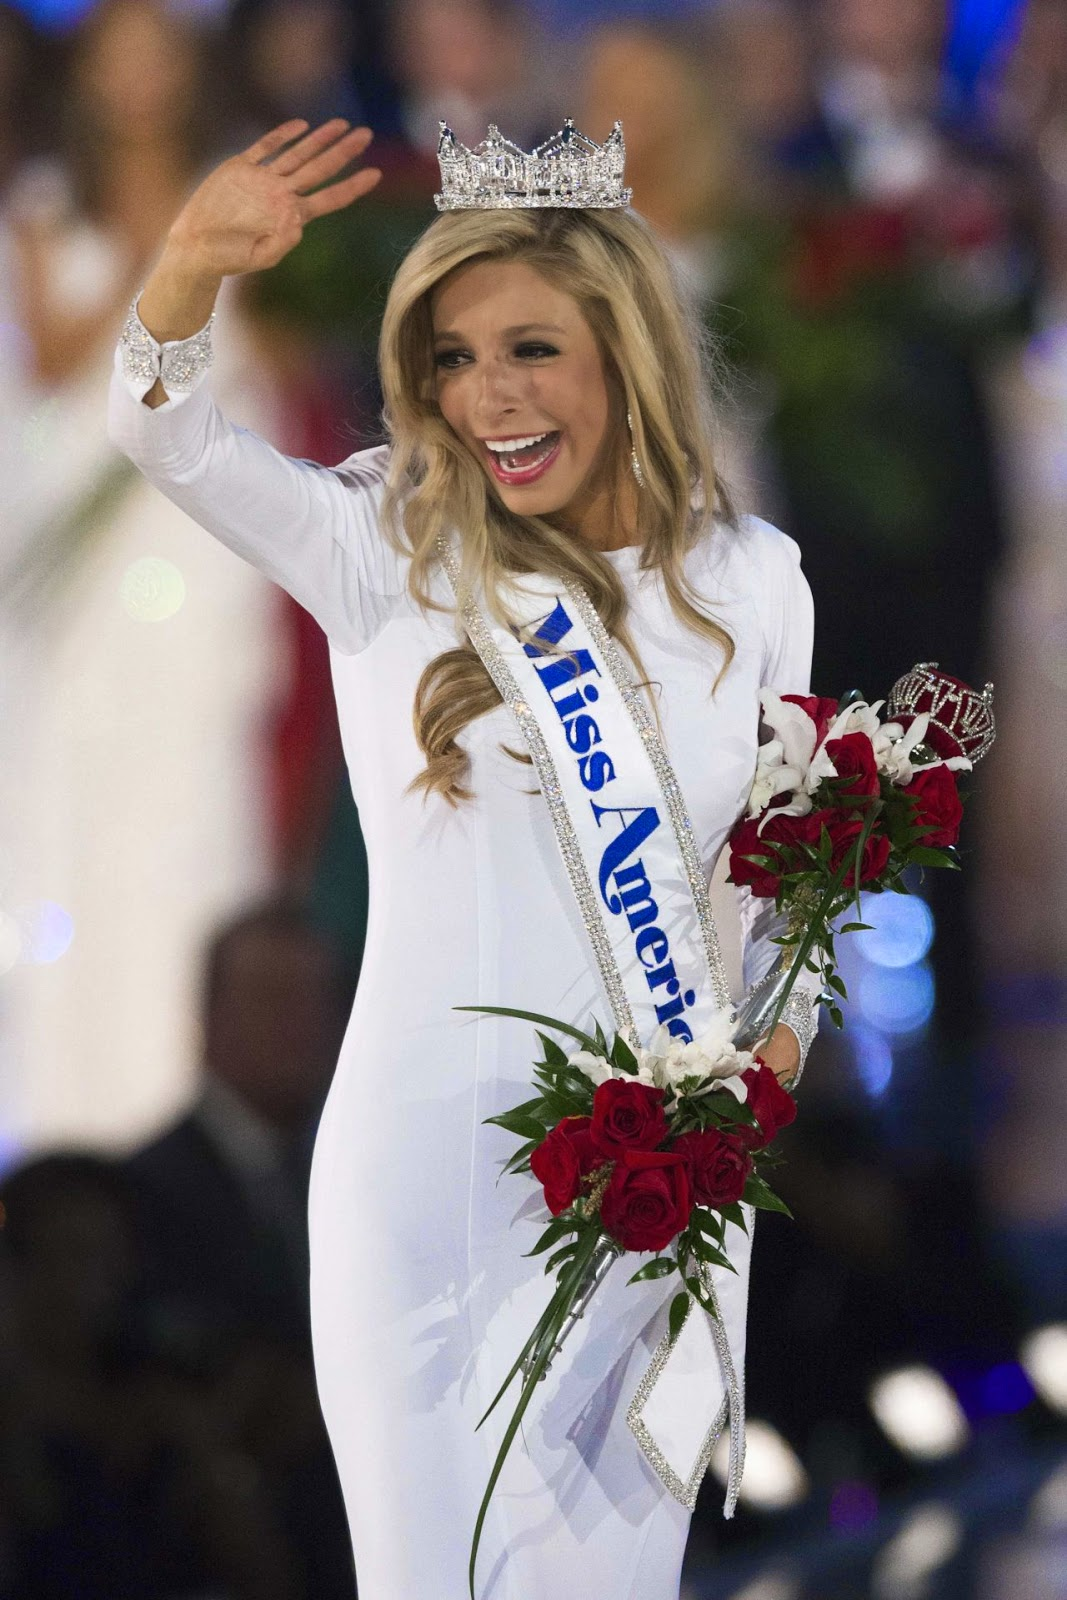 New Yorker Kira Kazantsev crowned Miss America 2015